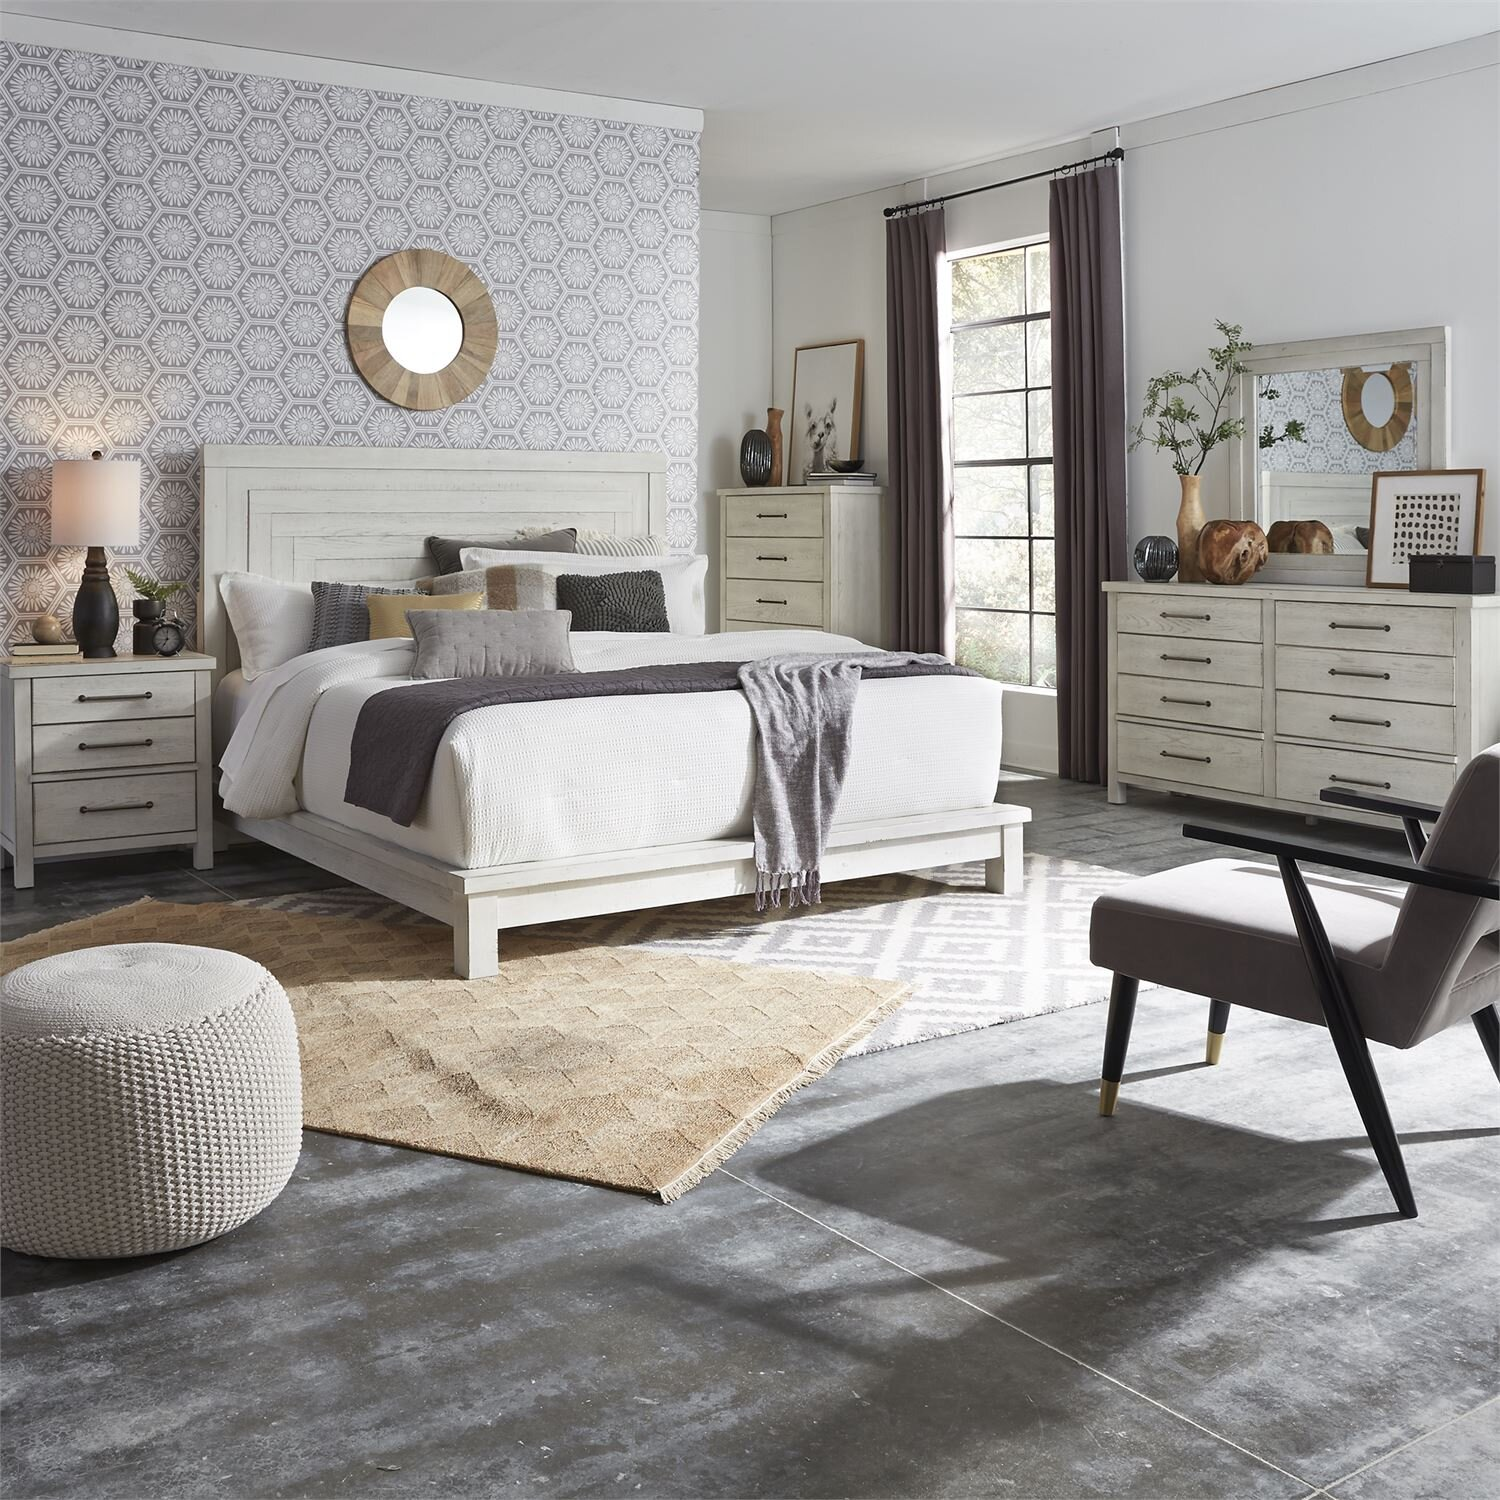 MODERN FARMHOUSE BEDROOM COLLECTION CHEST & NIGHTSTAND IS ONLY AVAILABLE - CALL FOR AVAILABILITY